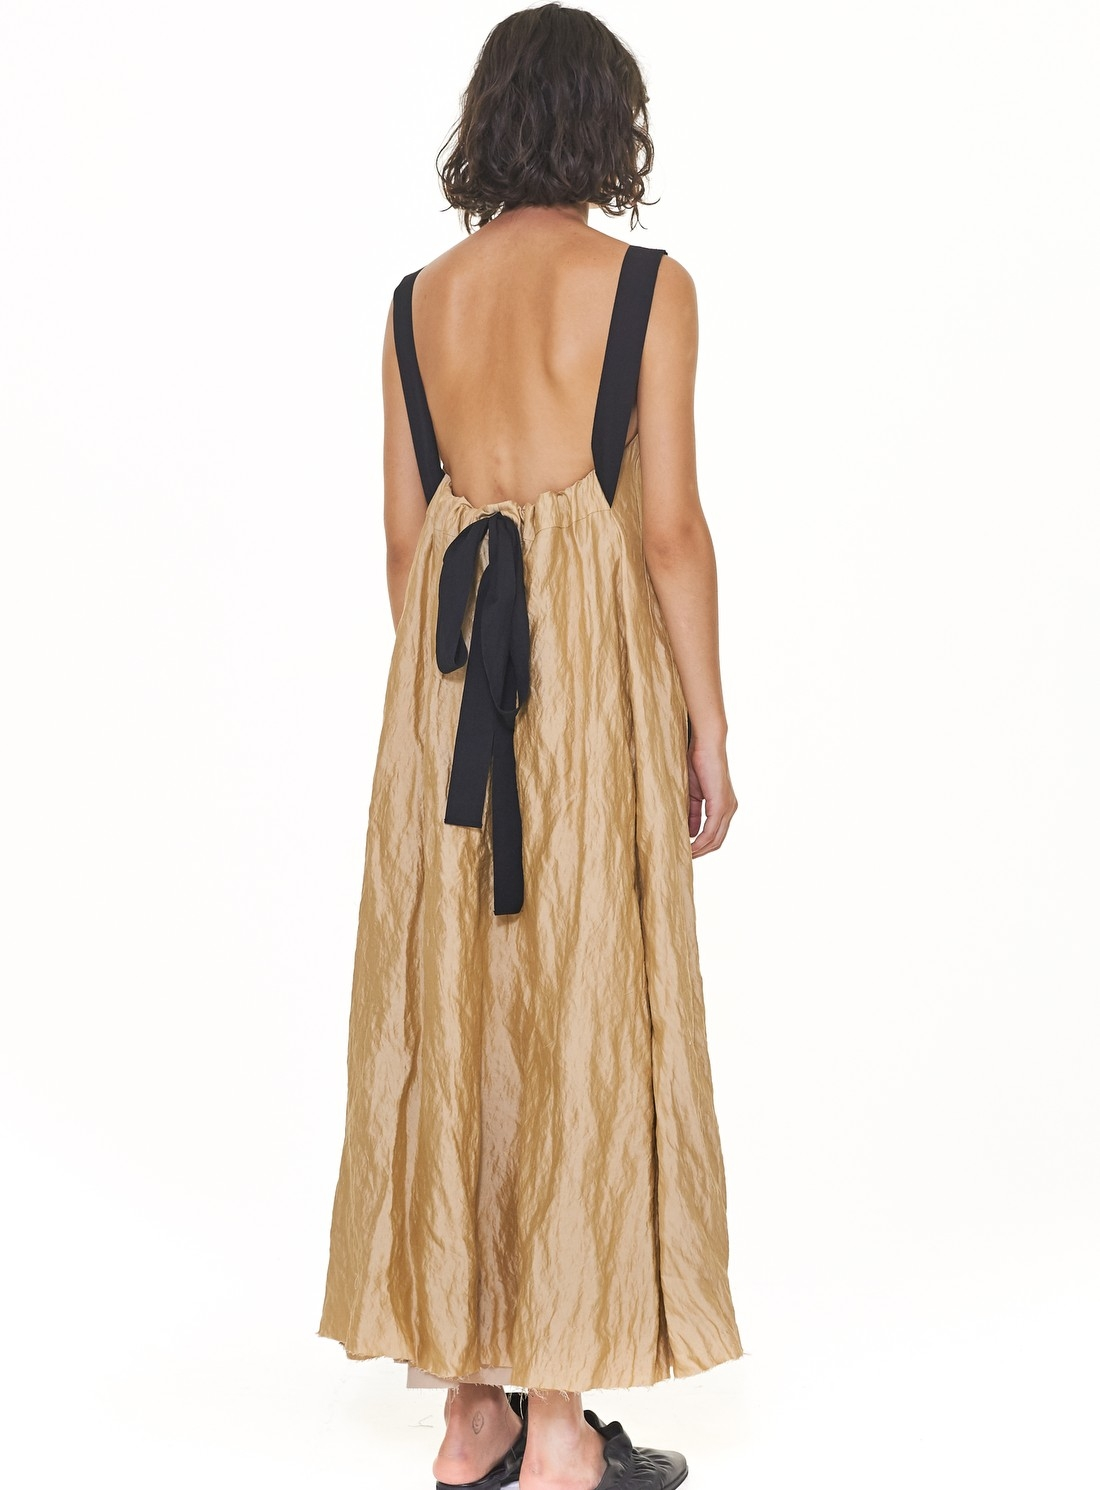 Pale Gold Slip Dress with Gathered Back Detail - last one (S) by WEN PAN